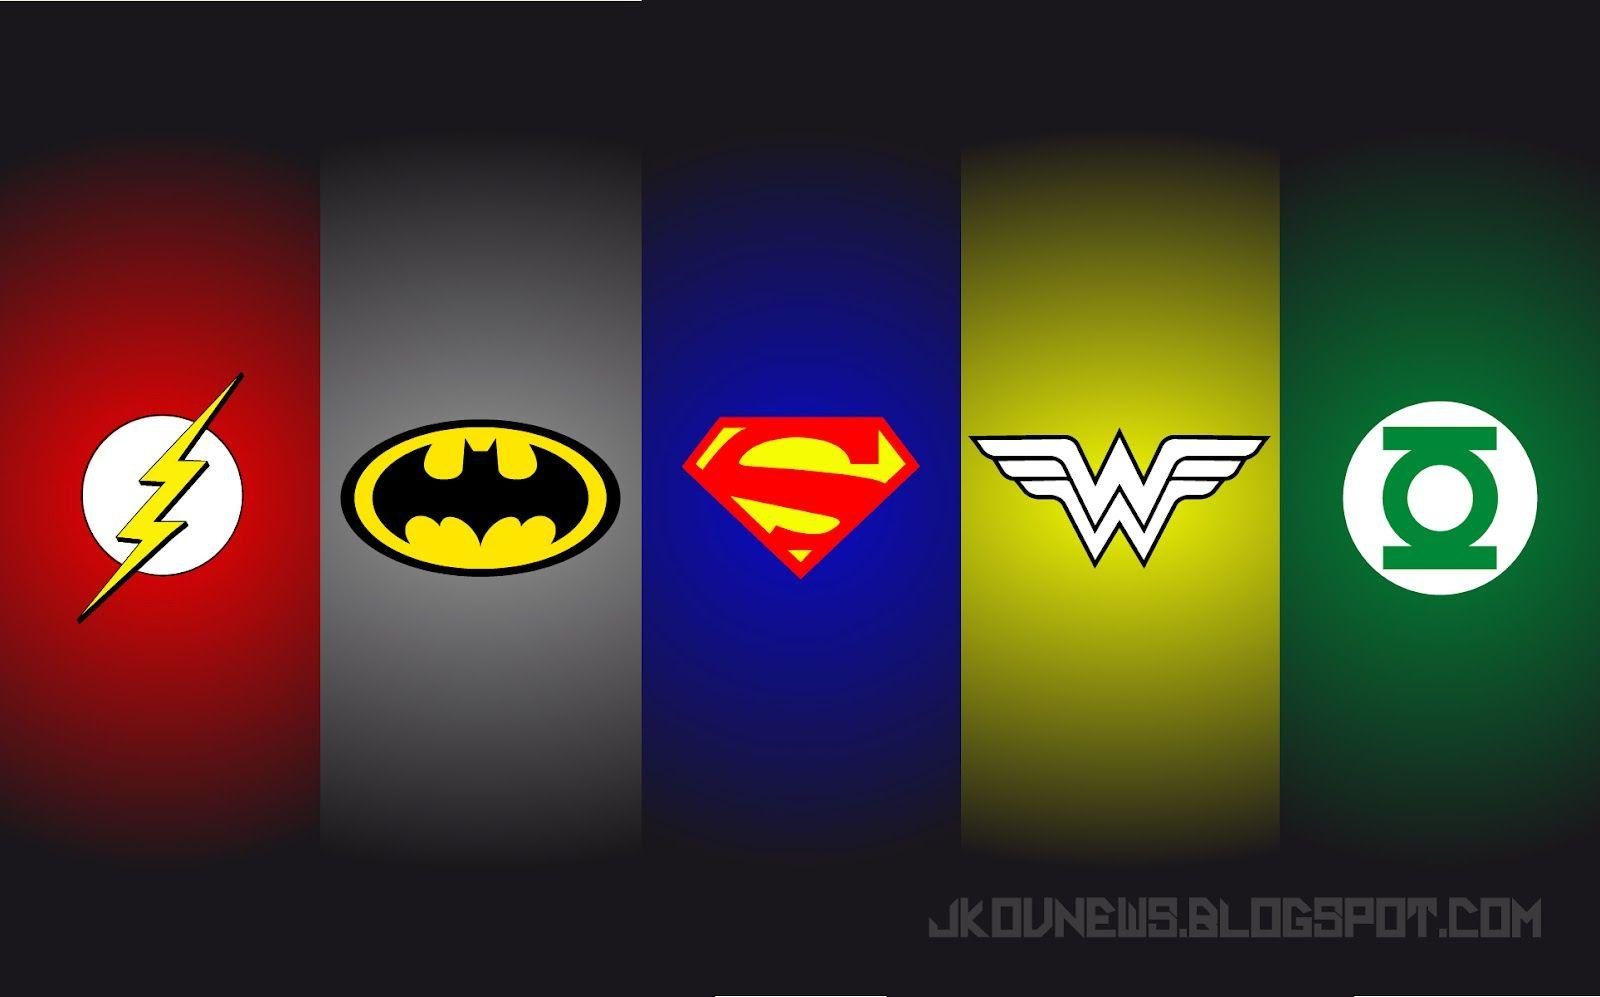 Justice League Wallpapers - Wallpaper CaveJustice League Emblem